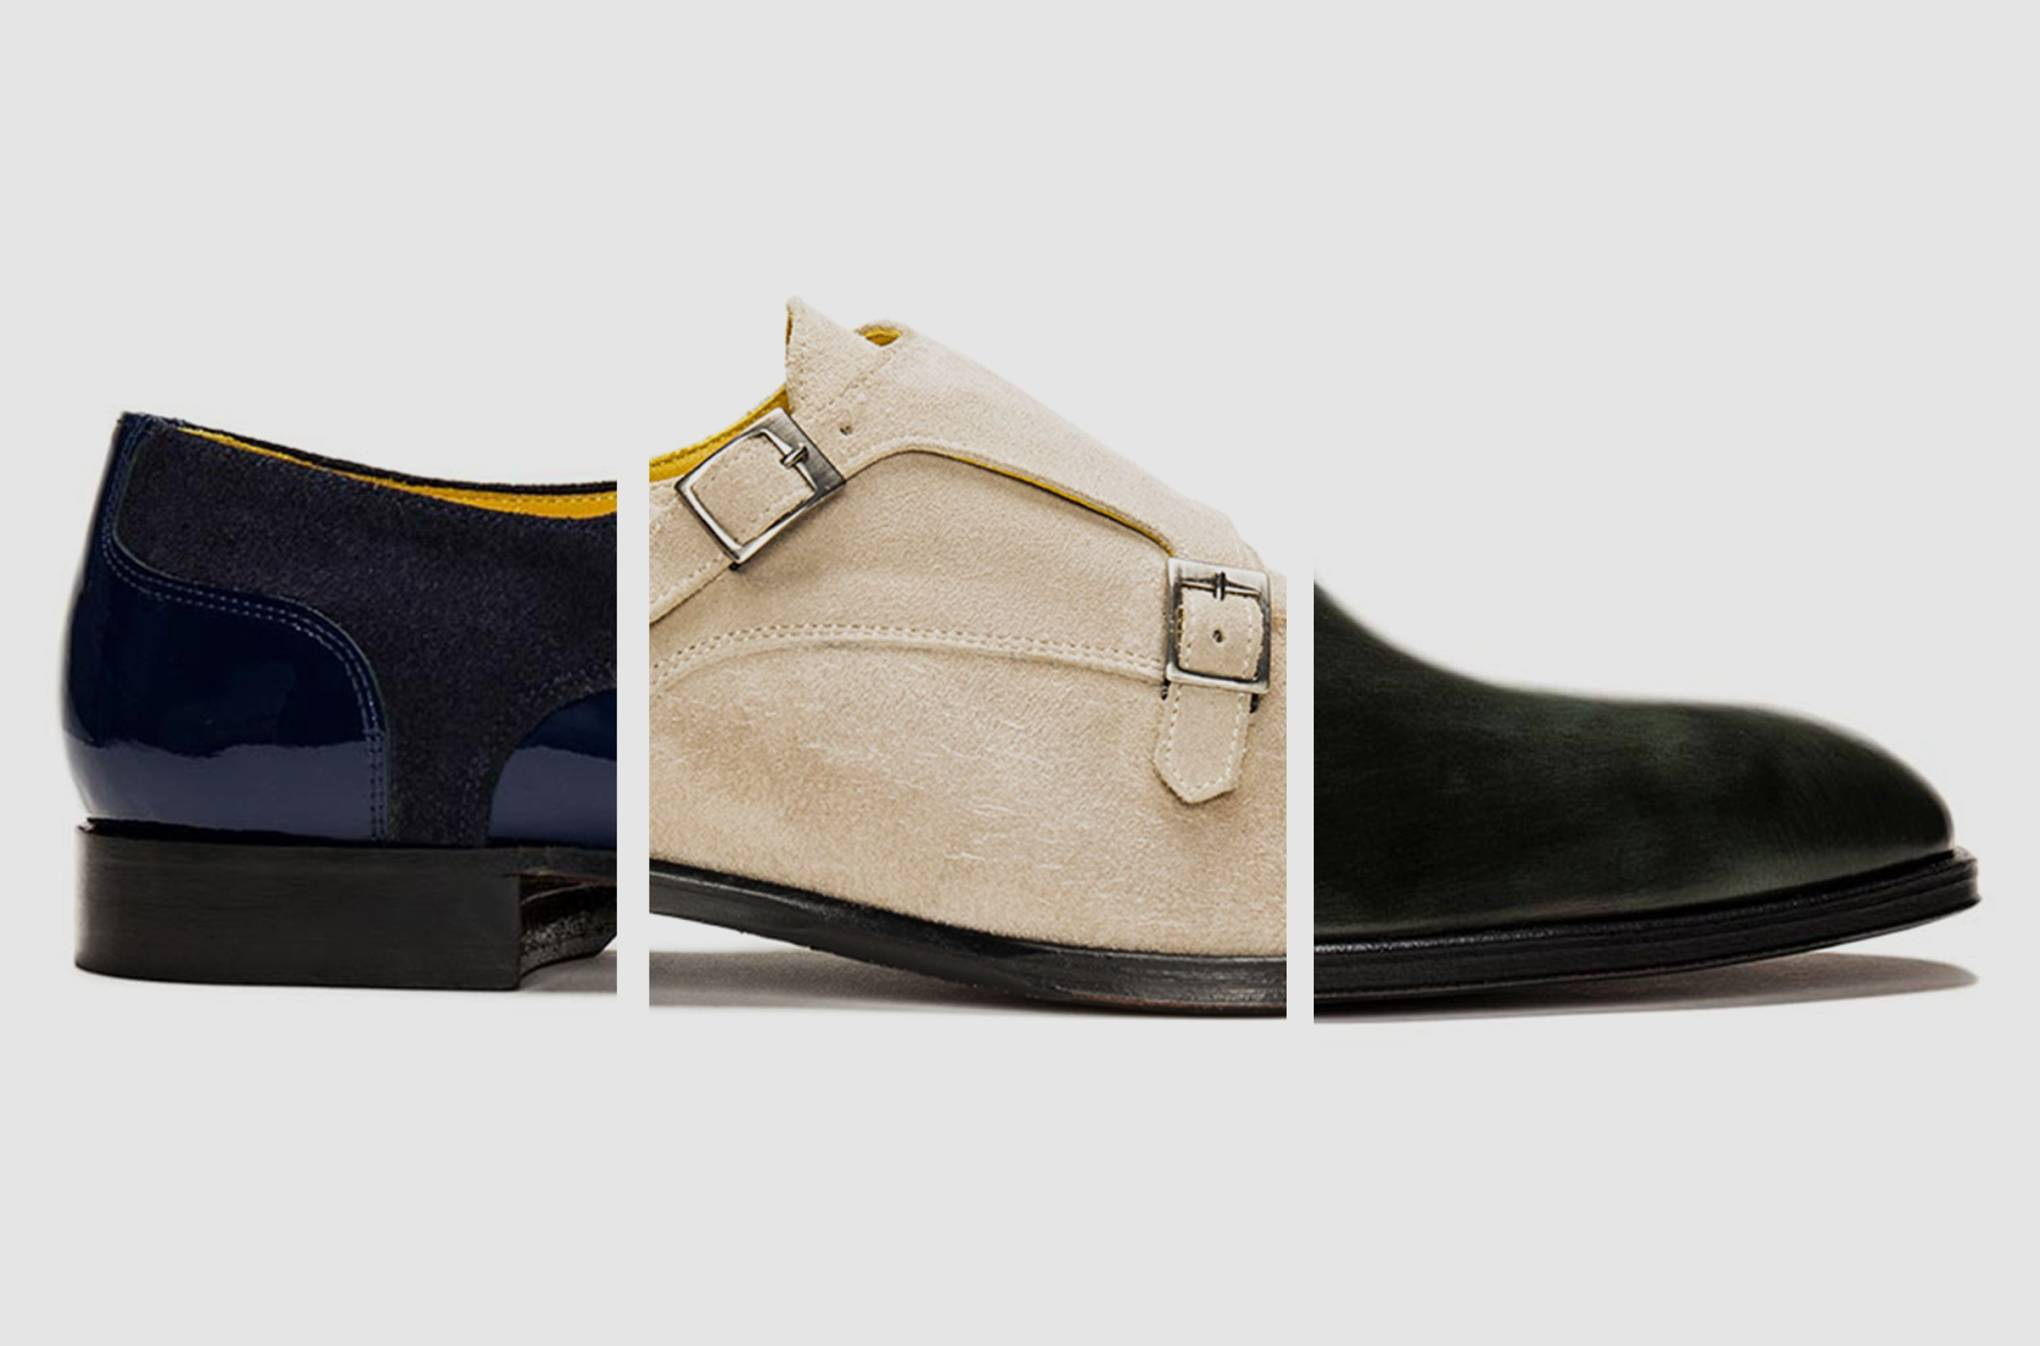 Design and customise your own Undandy shoes   British GQ